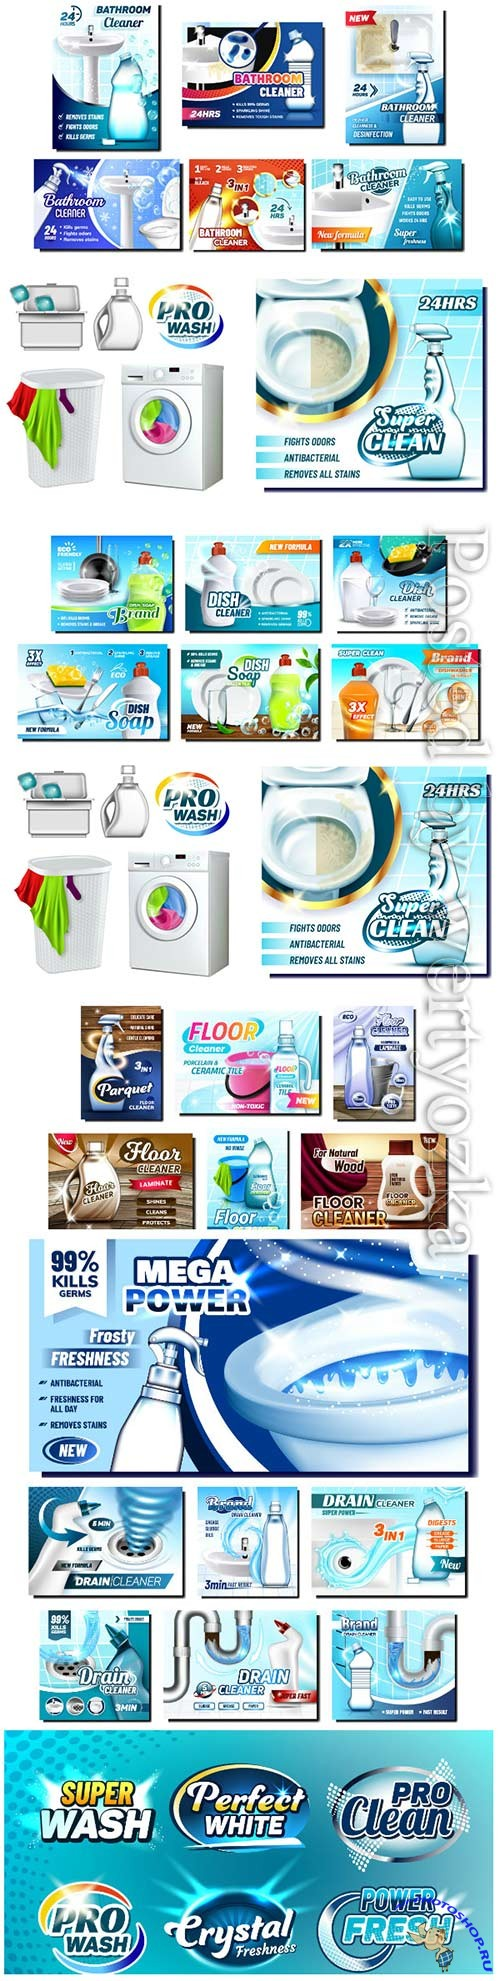 Cleaner creative promo banners vector set